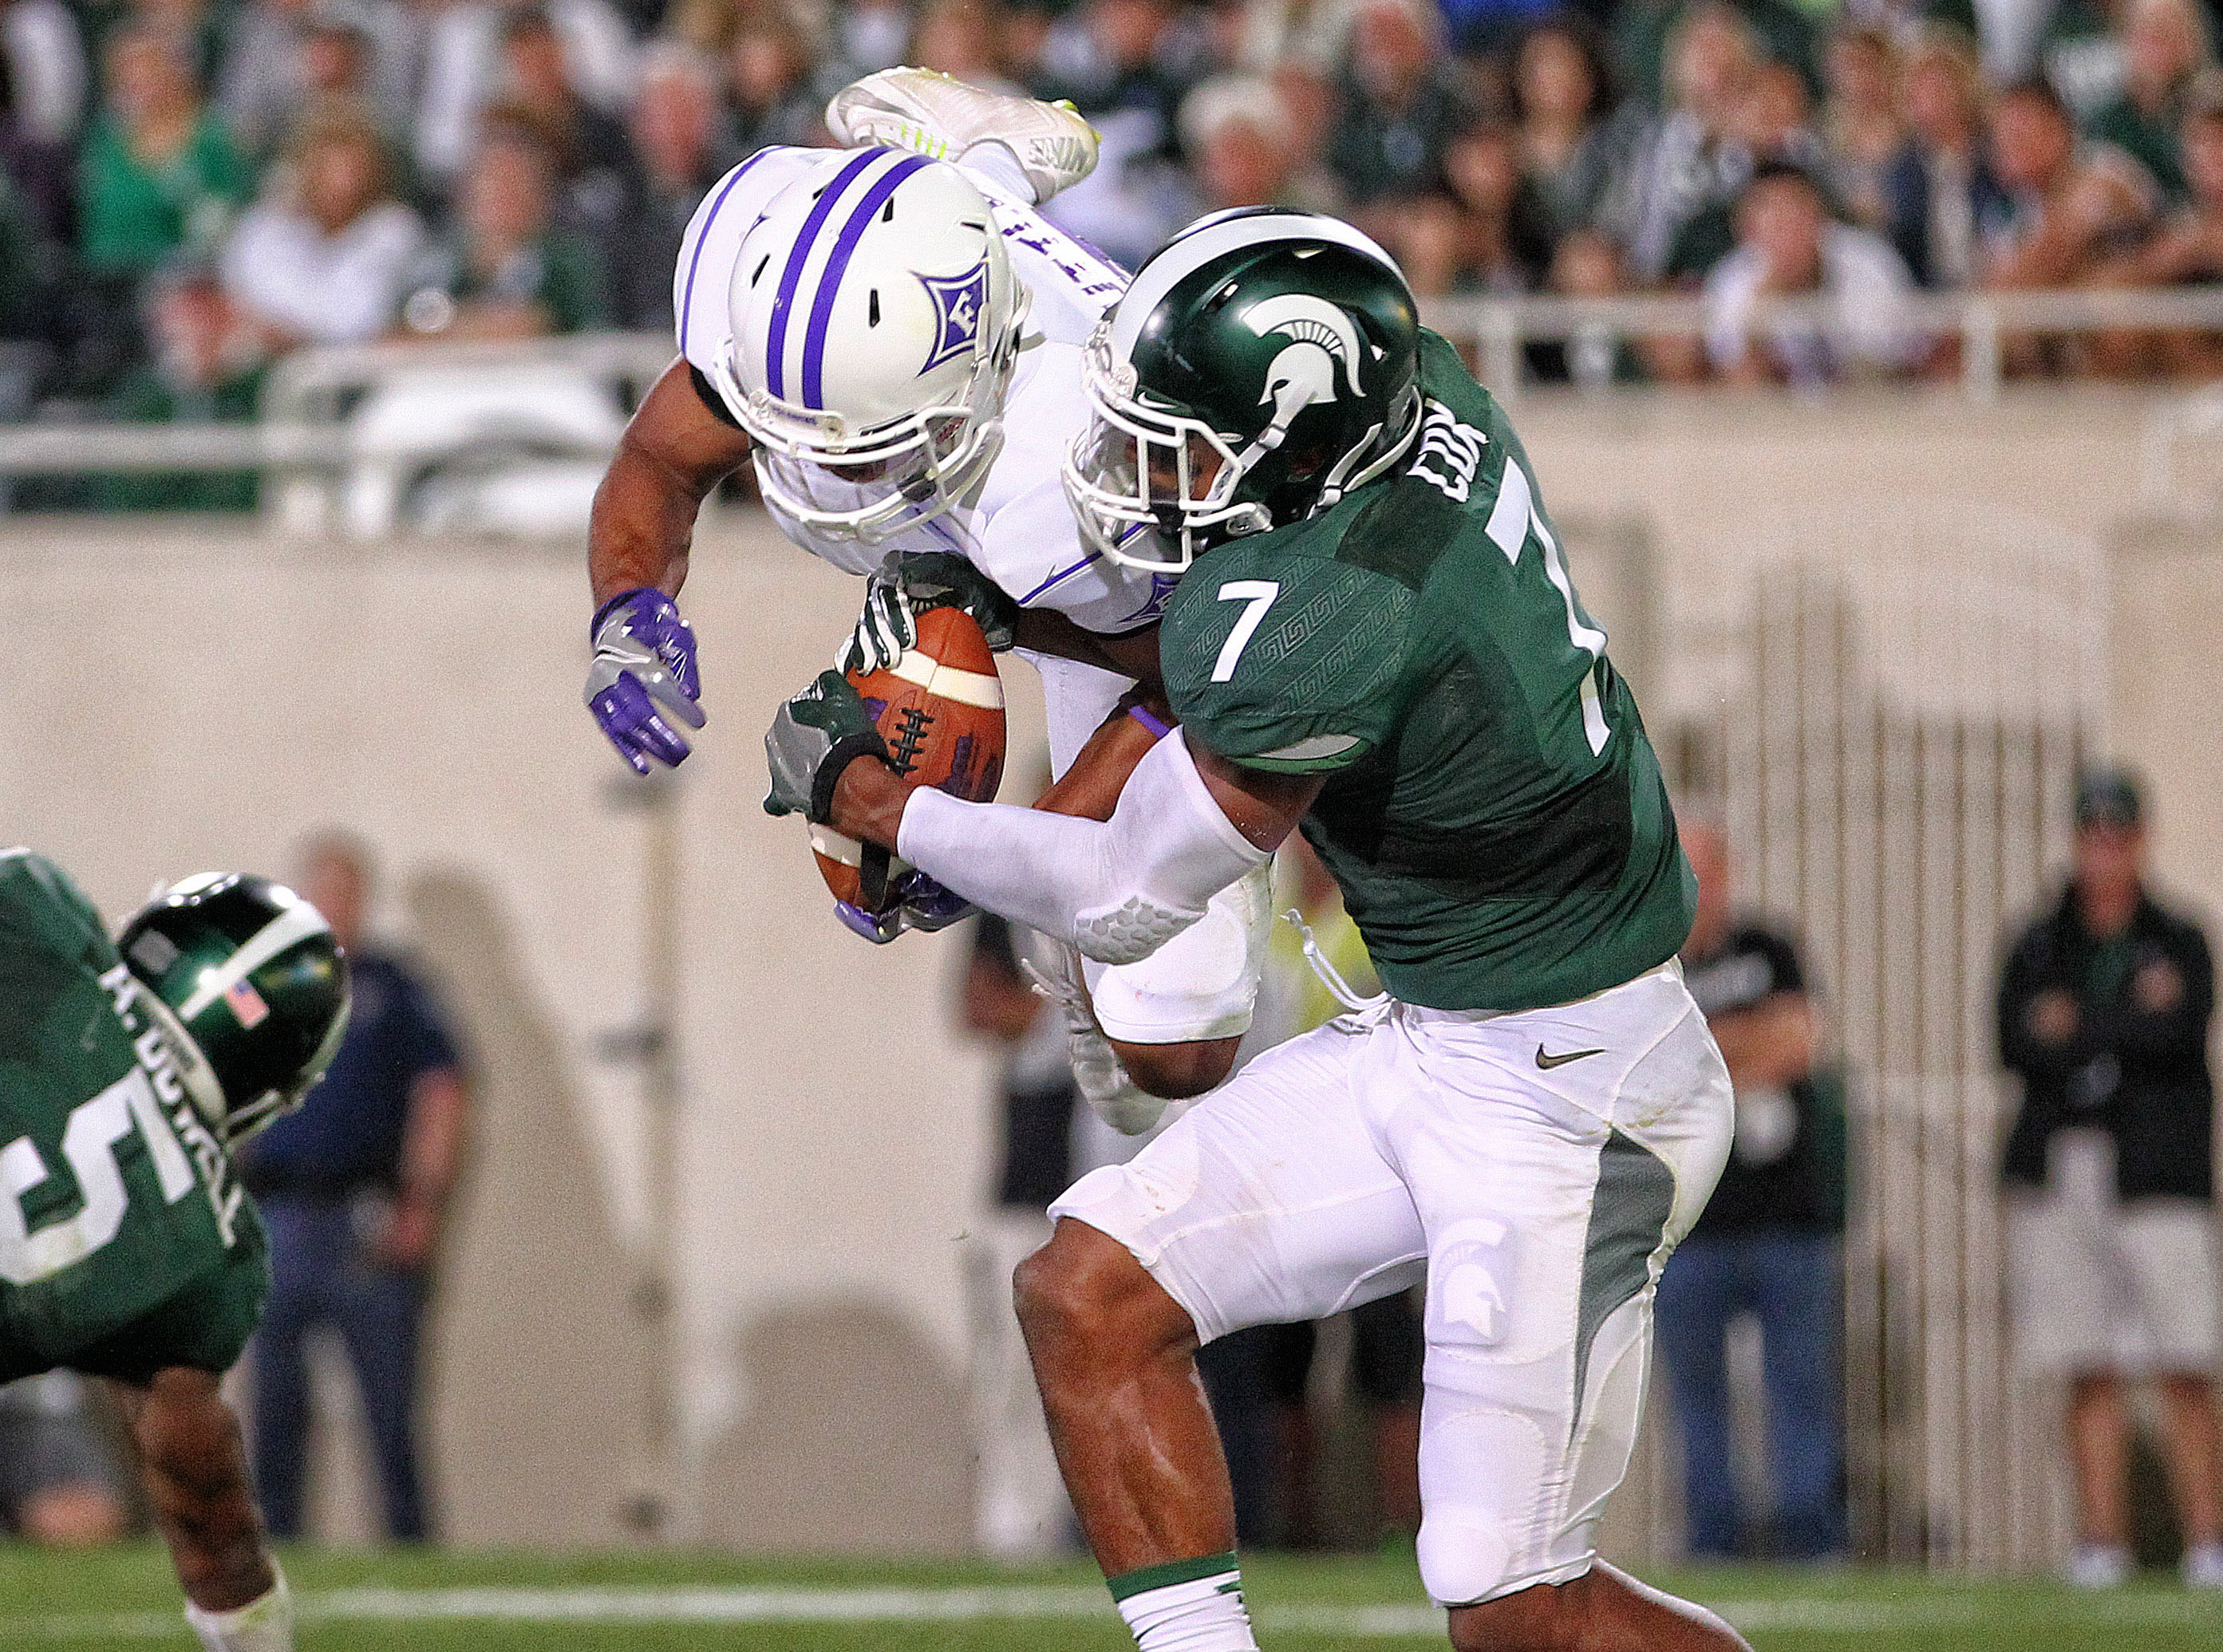 Sep 2, 2016; East Lansing, MI, USA; Michigan State Spartans defensive back Demetrious Cox (7) block a pass intended for Furman Paladins wide receiver Andrej Suttles (3) during the second half of a game at Spartan Stadium. Mandatory Credit: Mike Carter-USA TODAY Sports